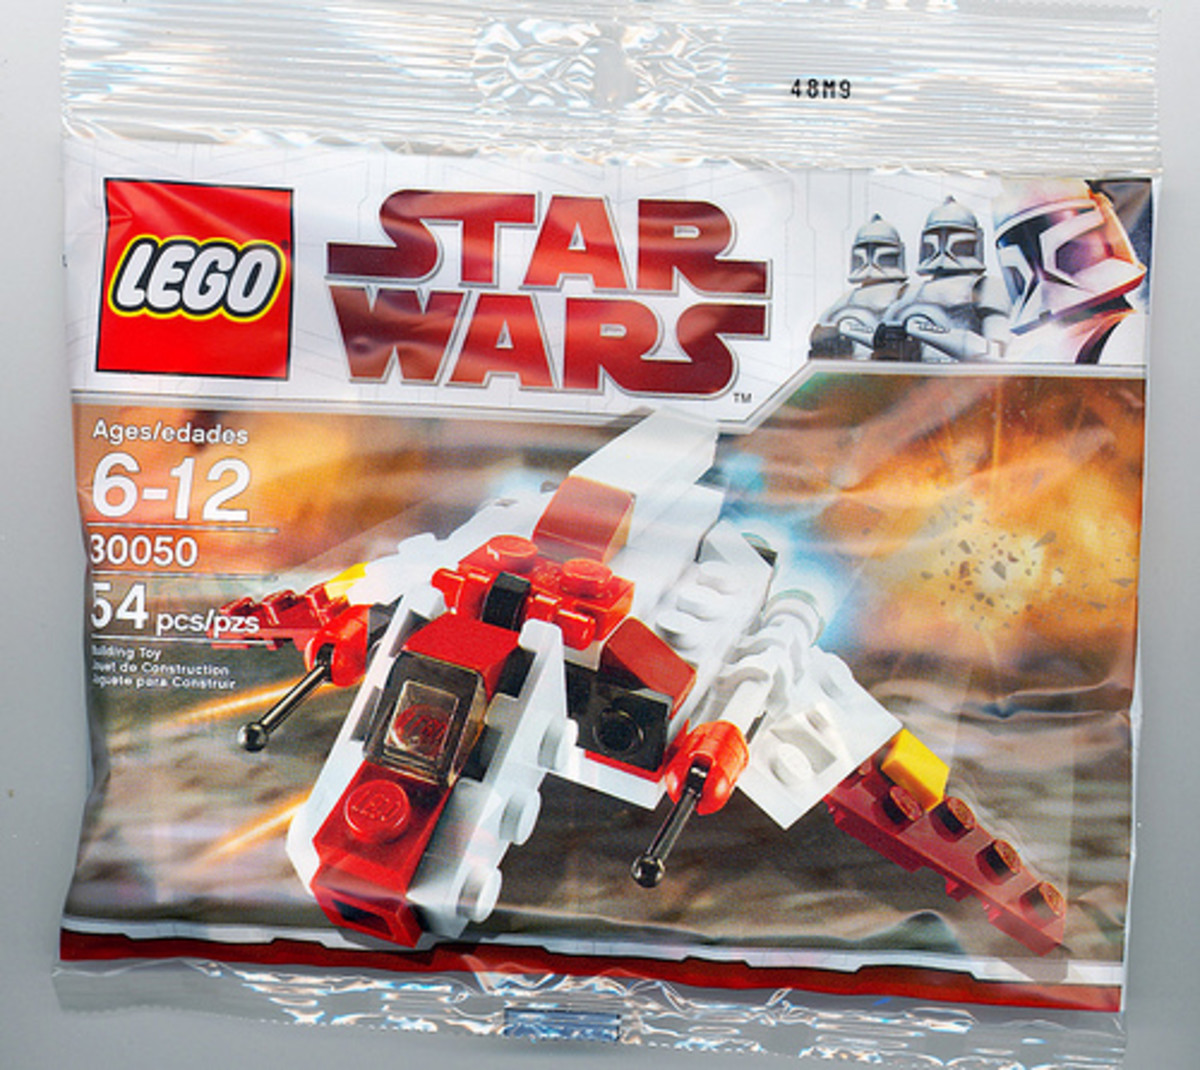 LEGO Star Wars Republic Attack Shuttle 30050 Bag